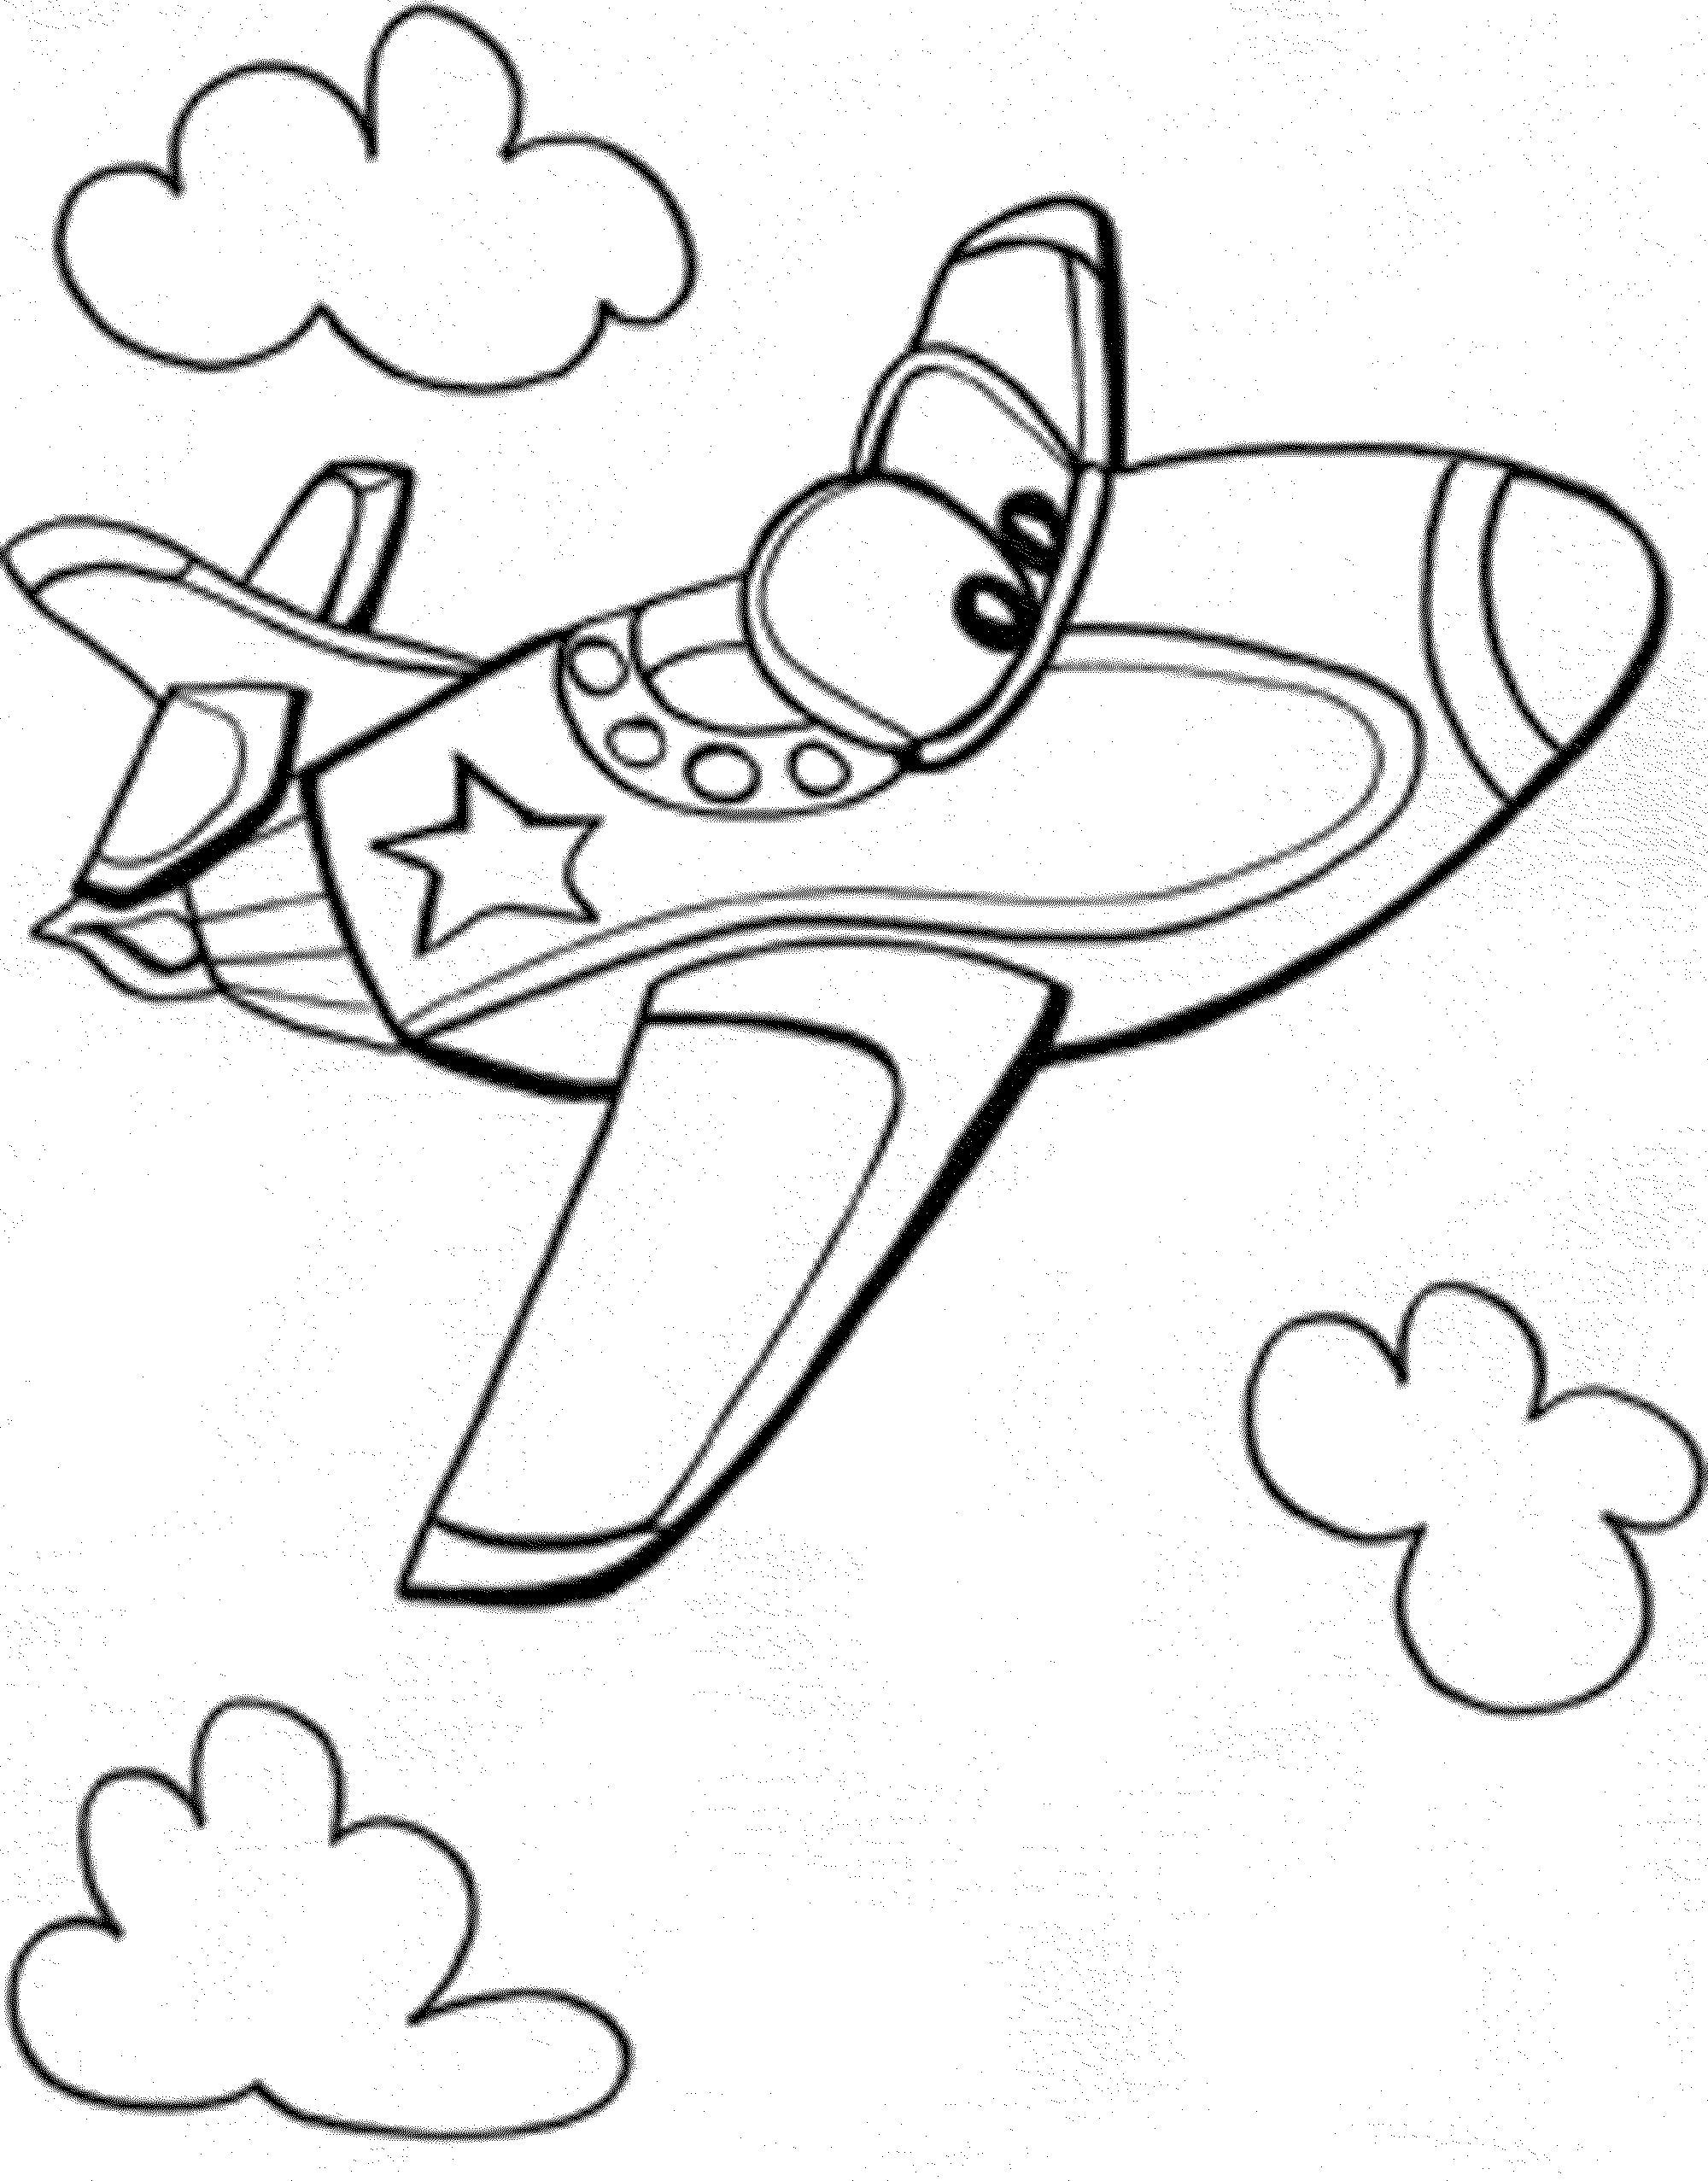 airplane color pages free printable airplane coloring pages for kids pages airplane color